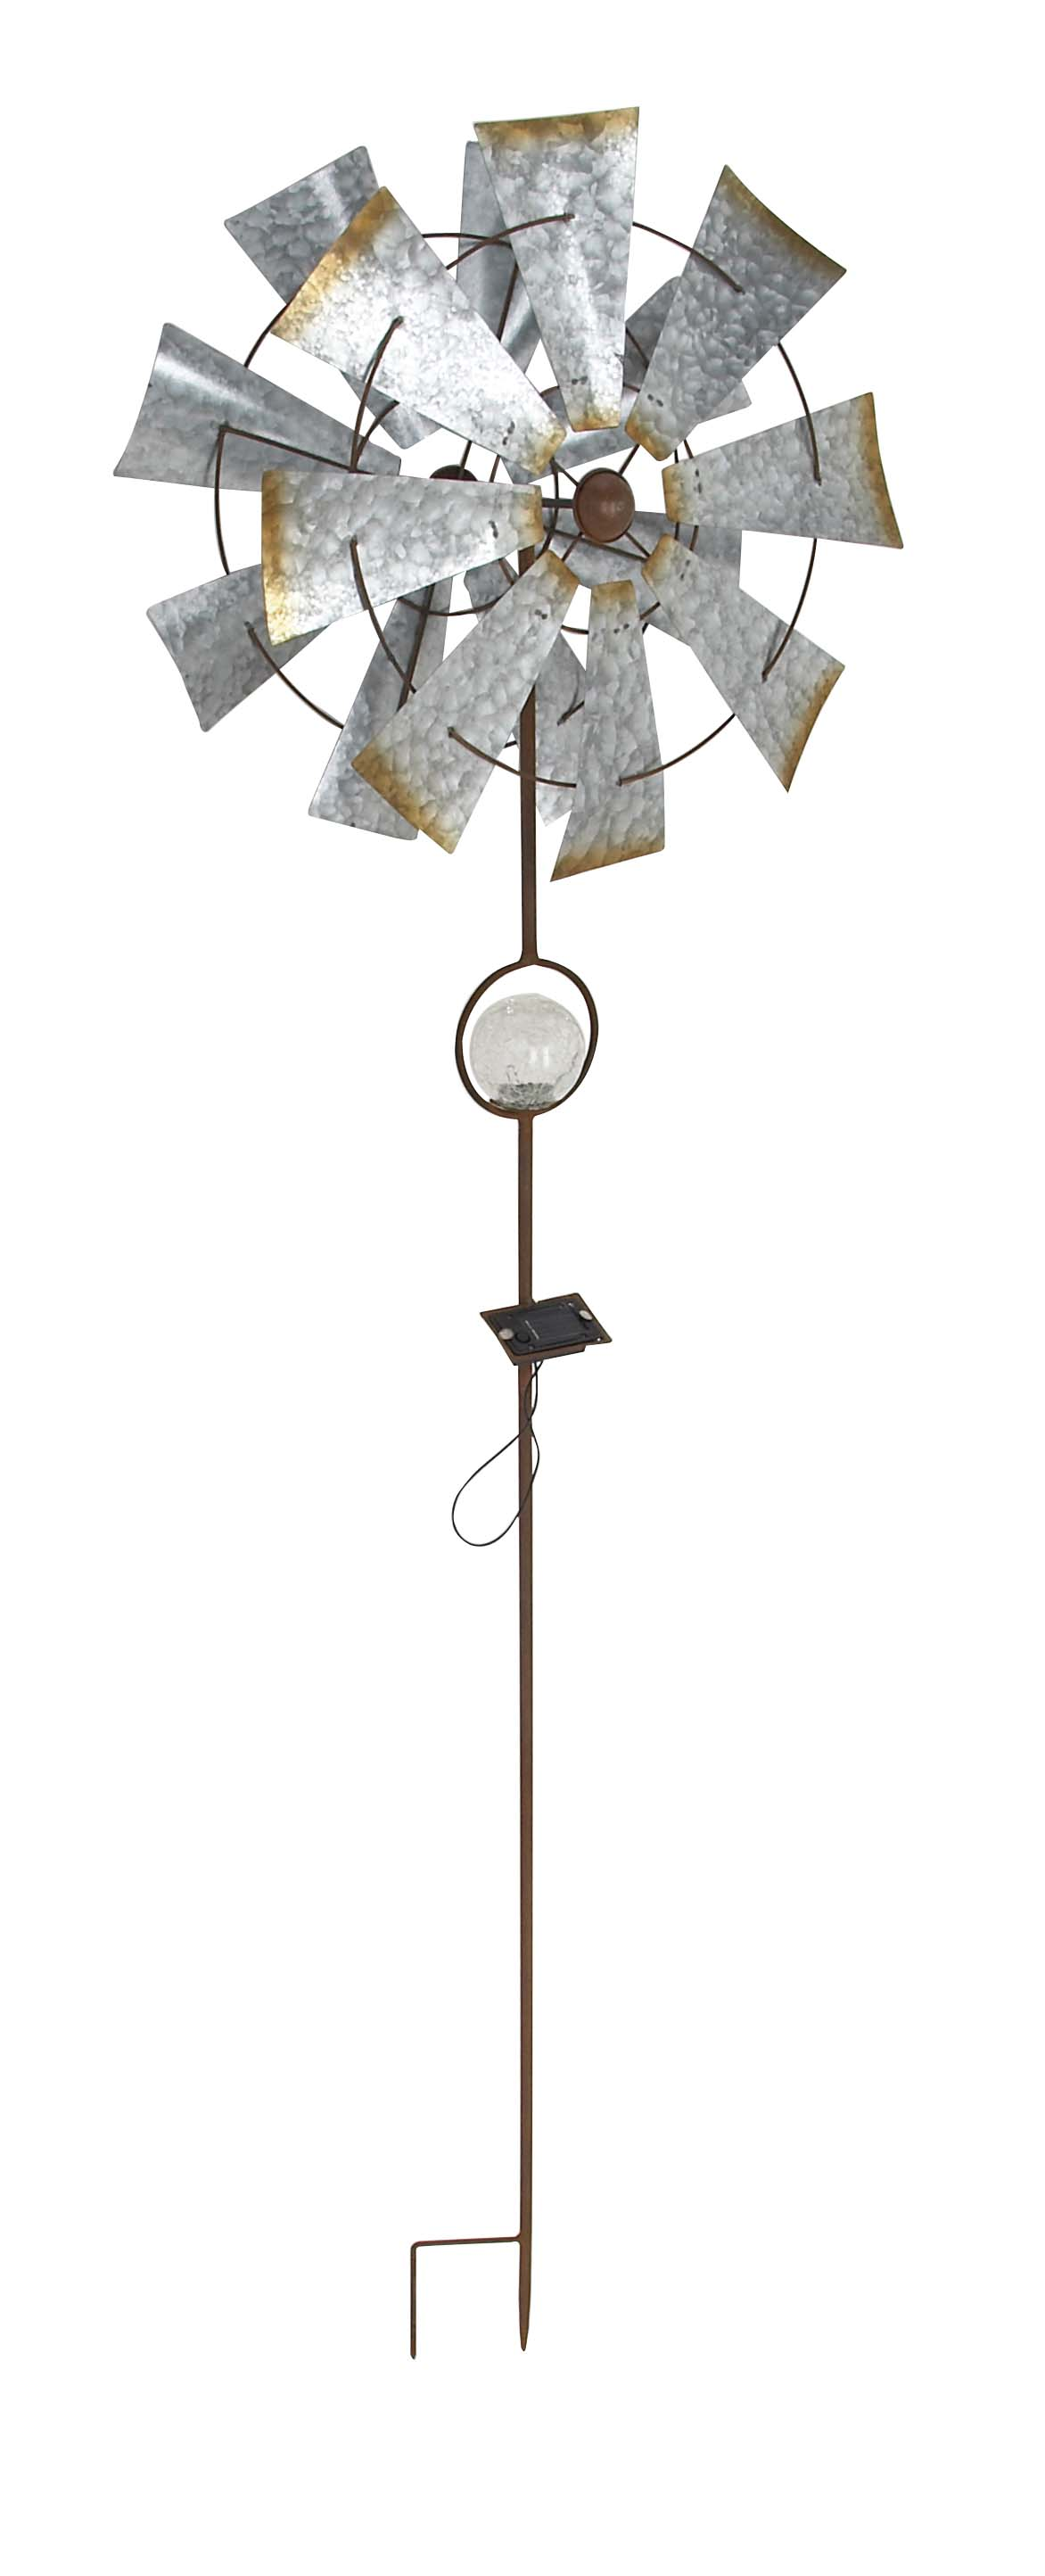 Decmode Rustic Iron Solar 8-Bladed Windmill, Silver by DecMode